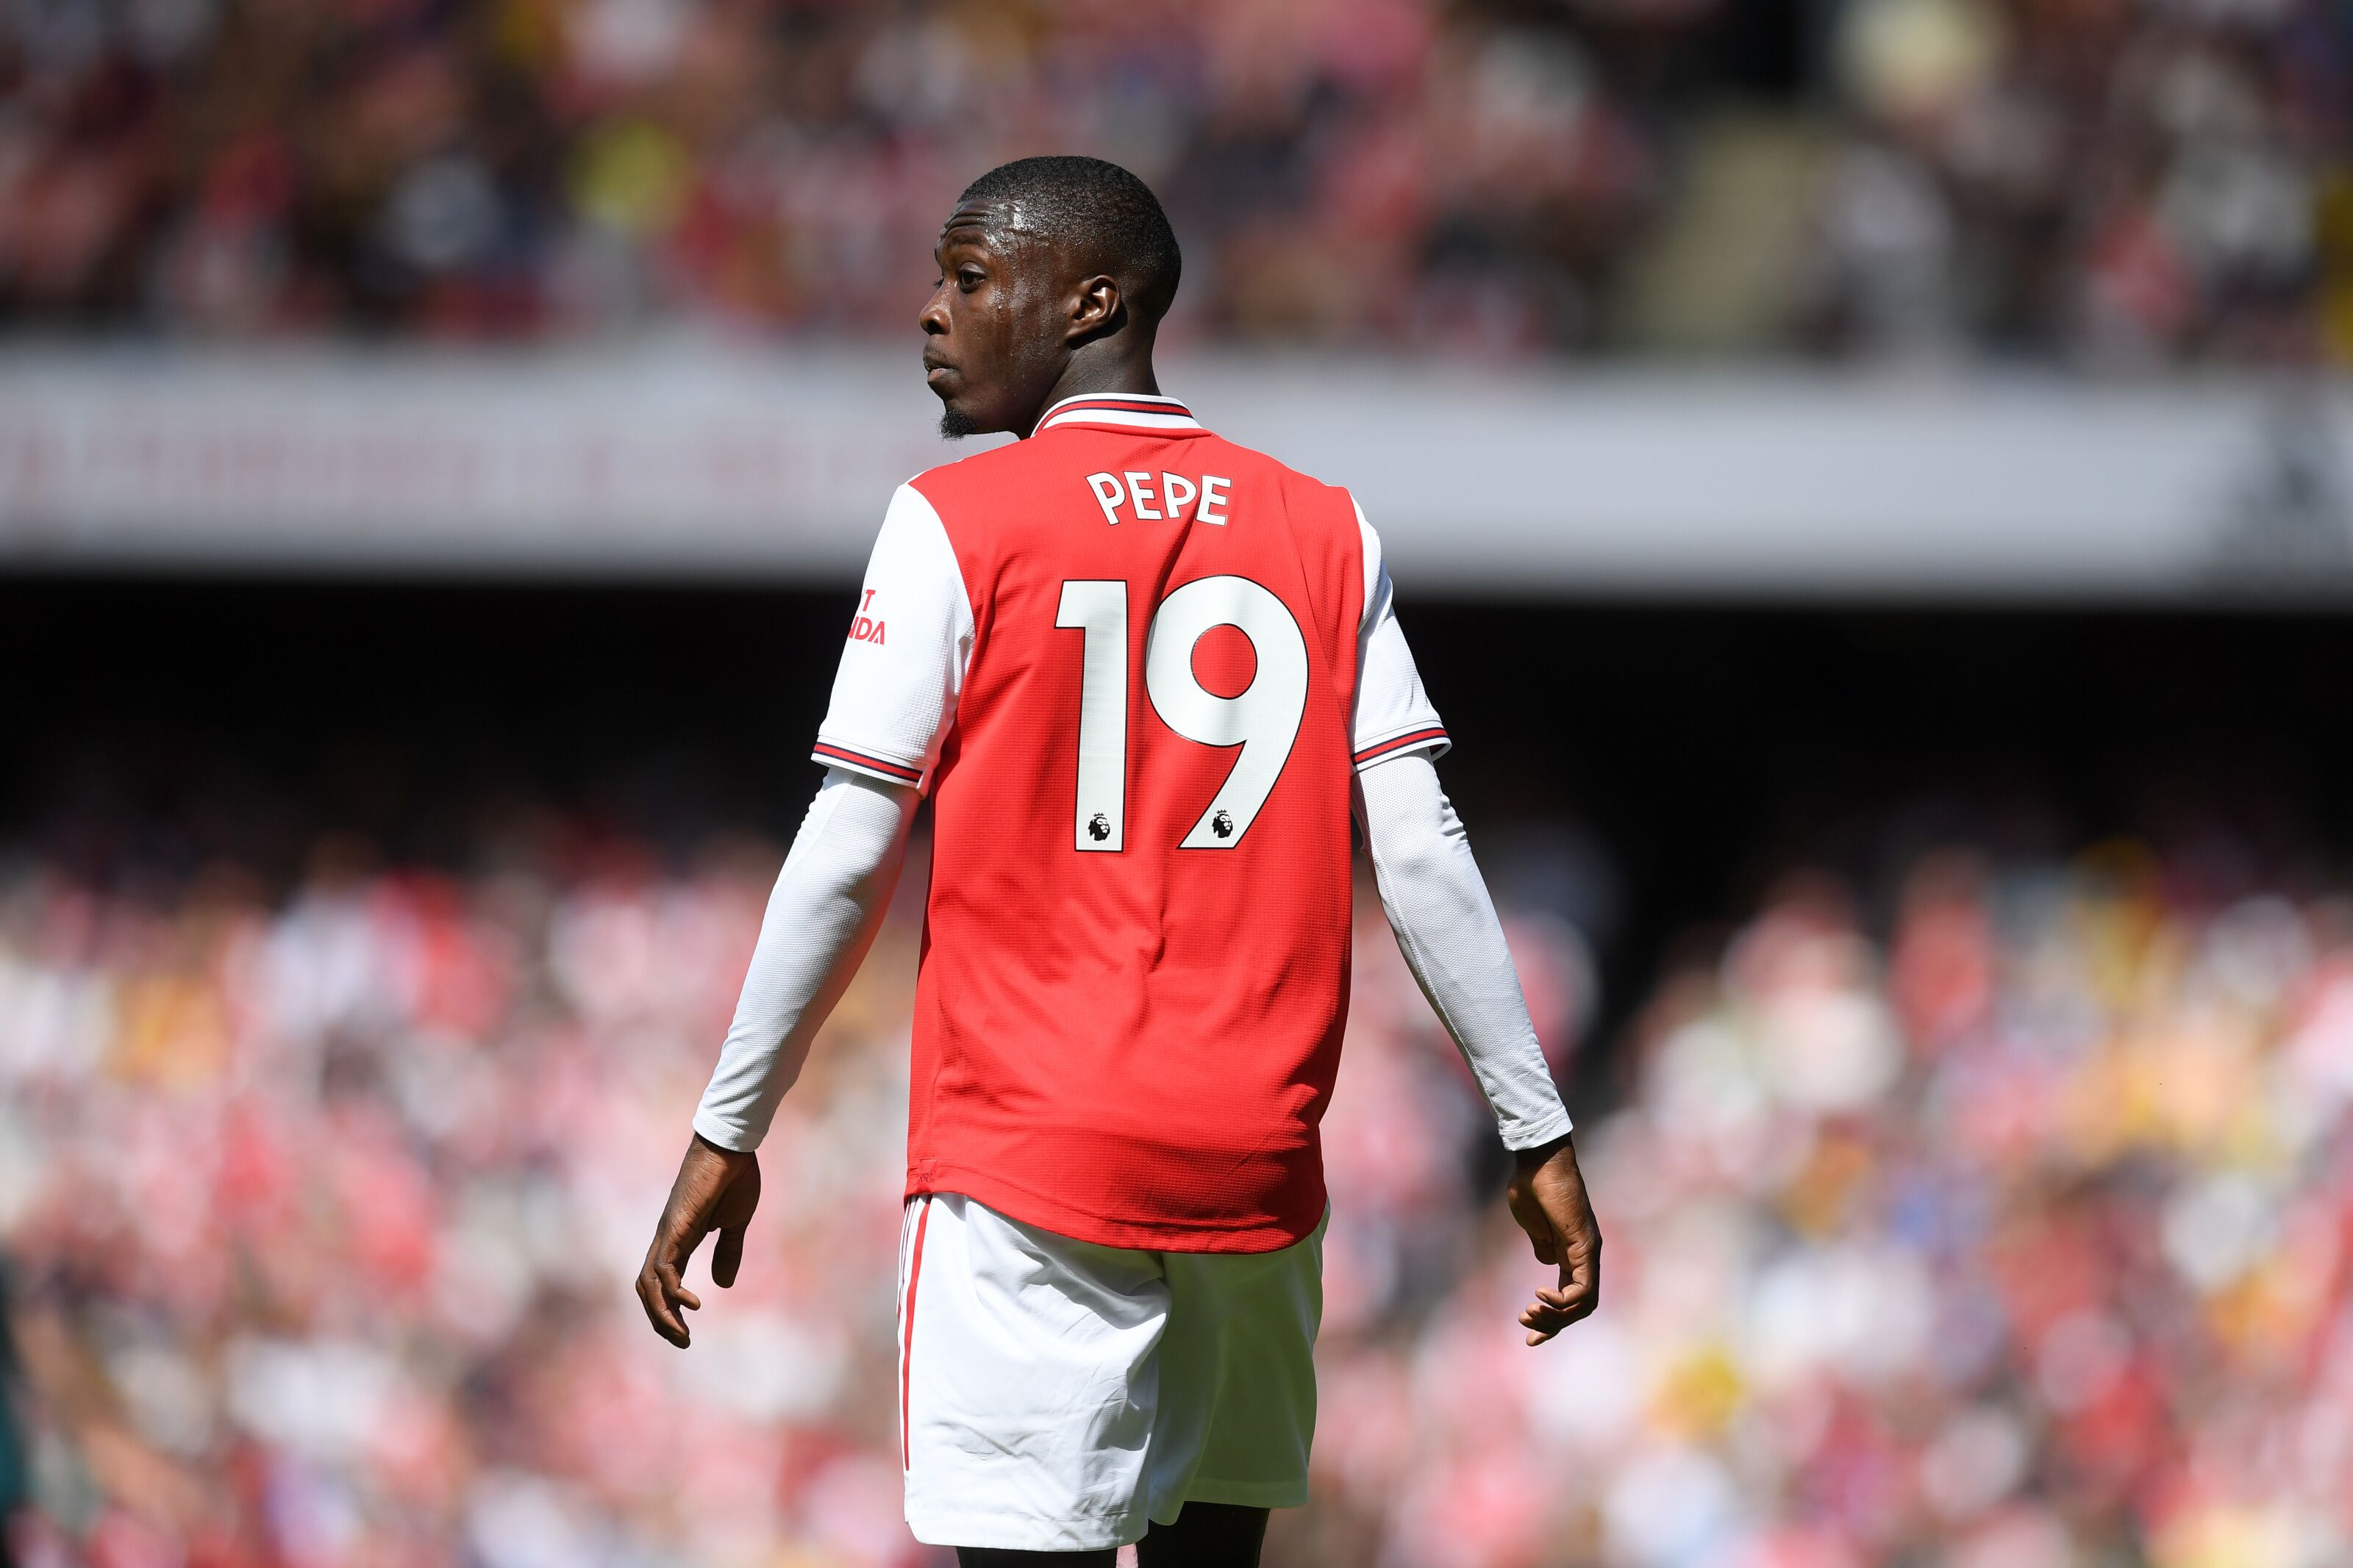 Arsenal: Imagine what Nicolas Pepe can do with 90 minutes